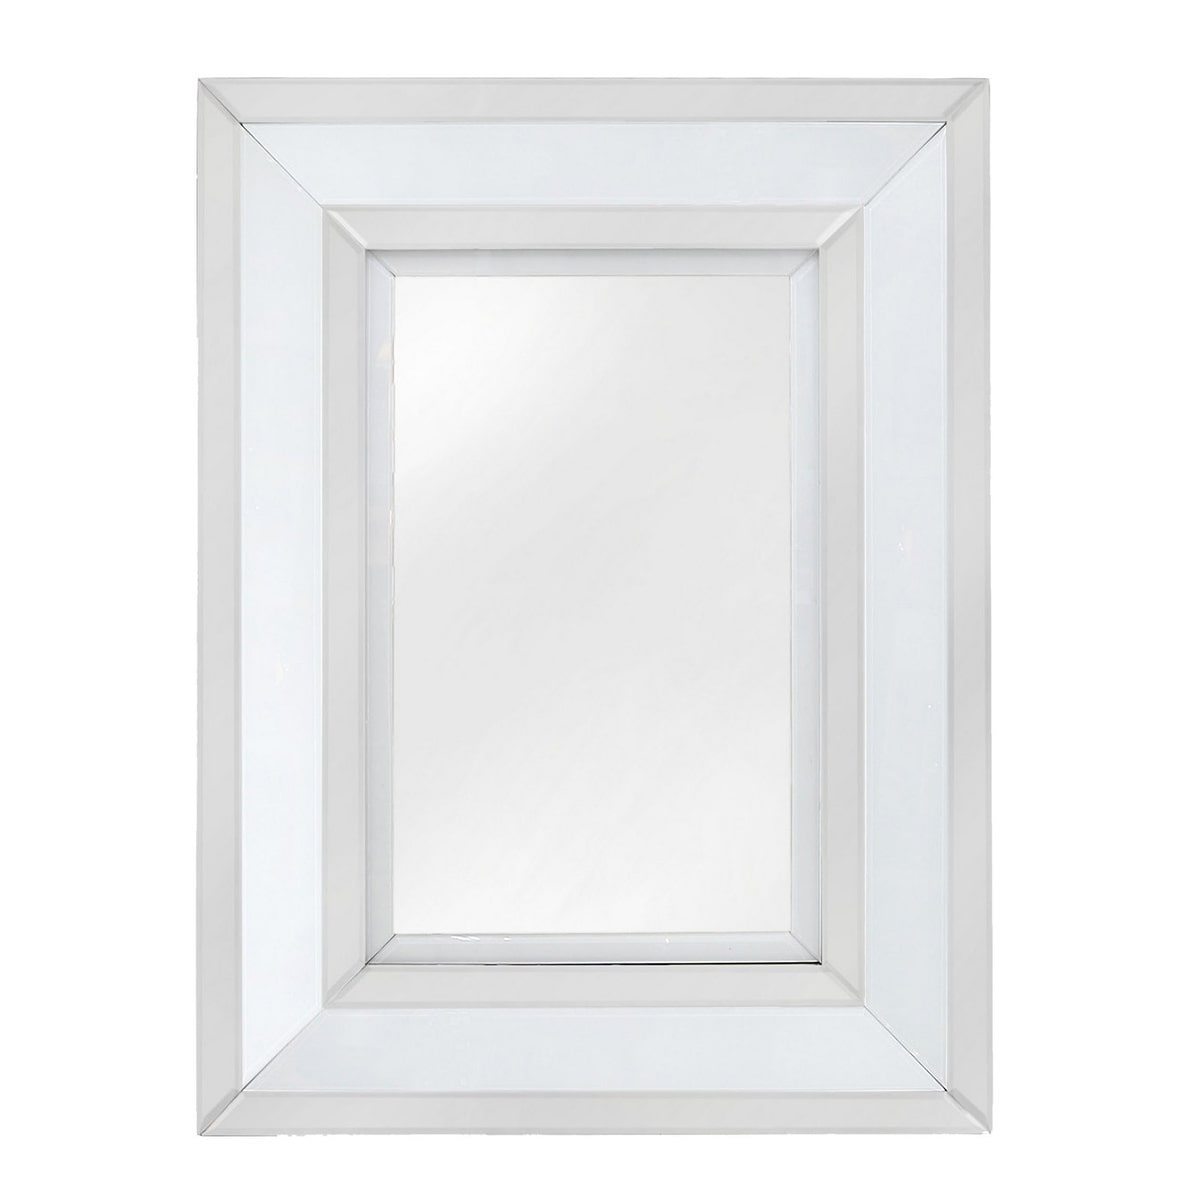 Mayfair Rectangular Wall Mirror